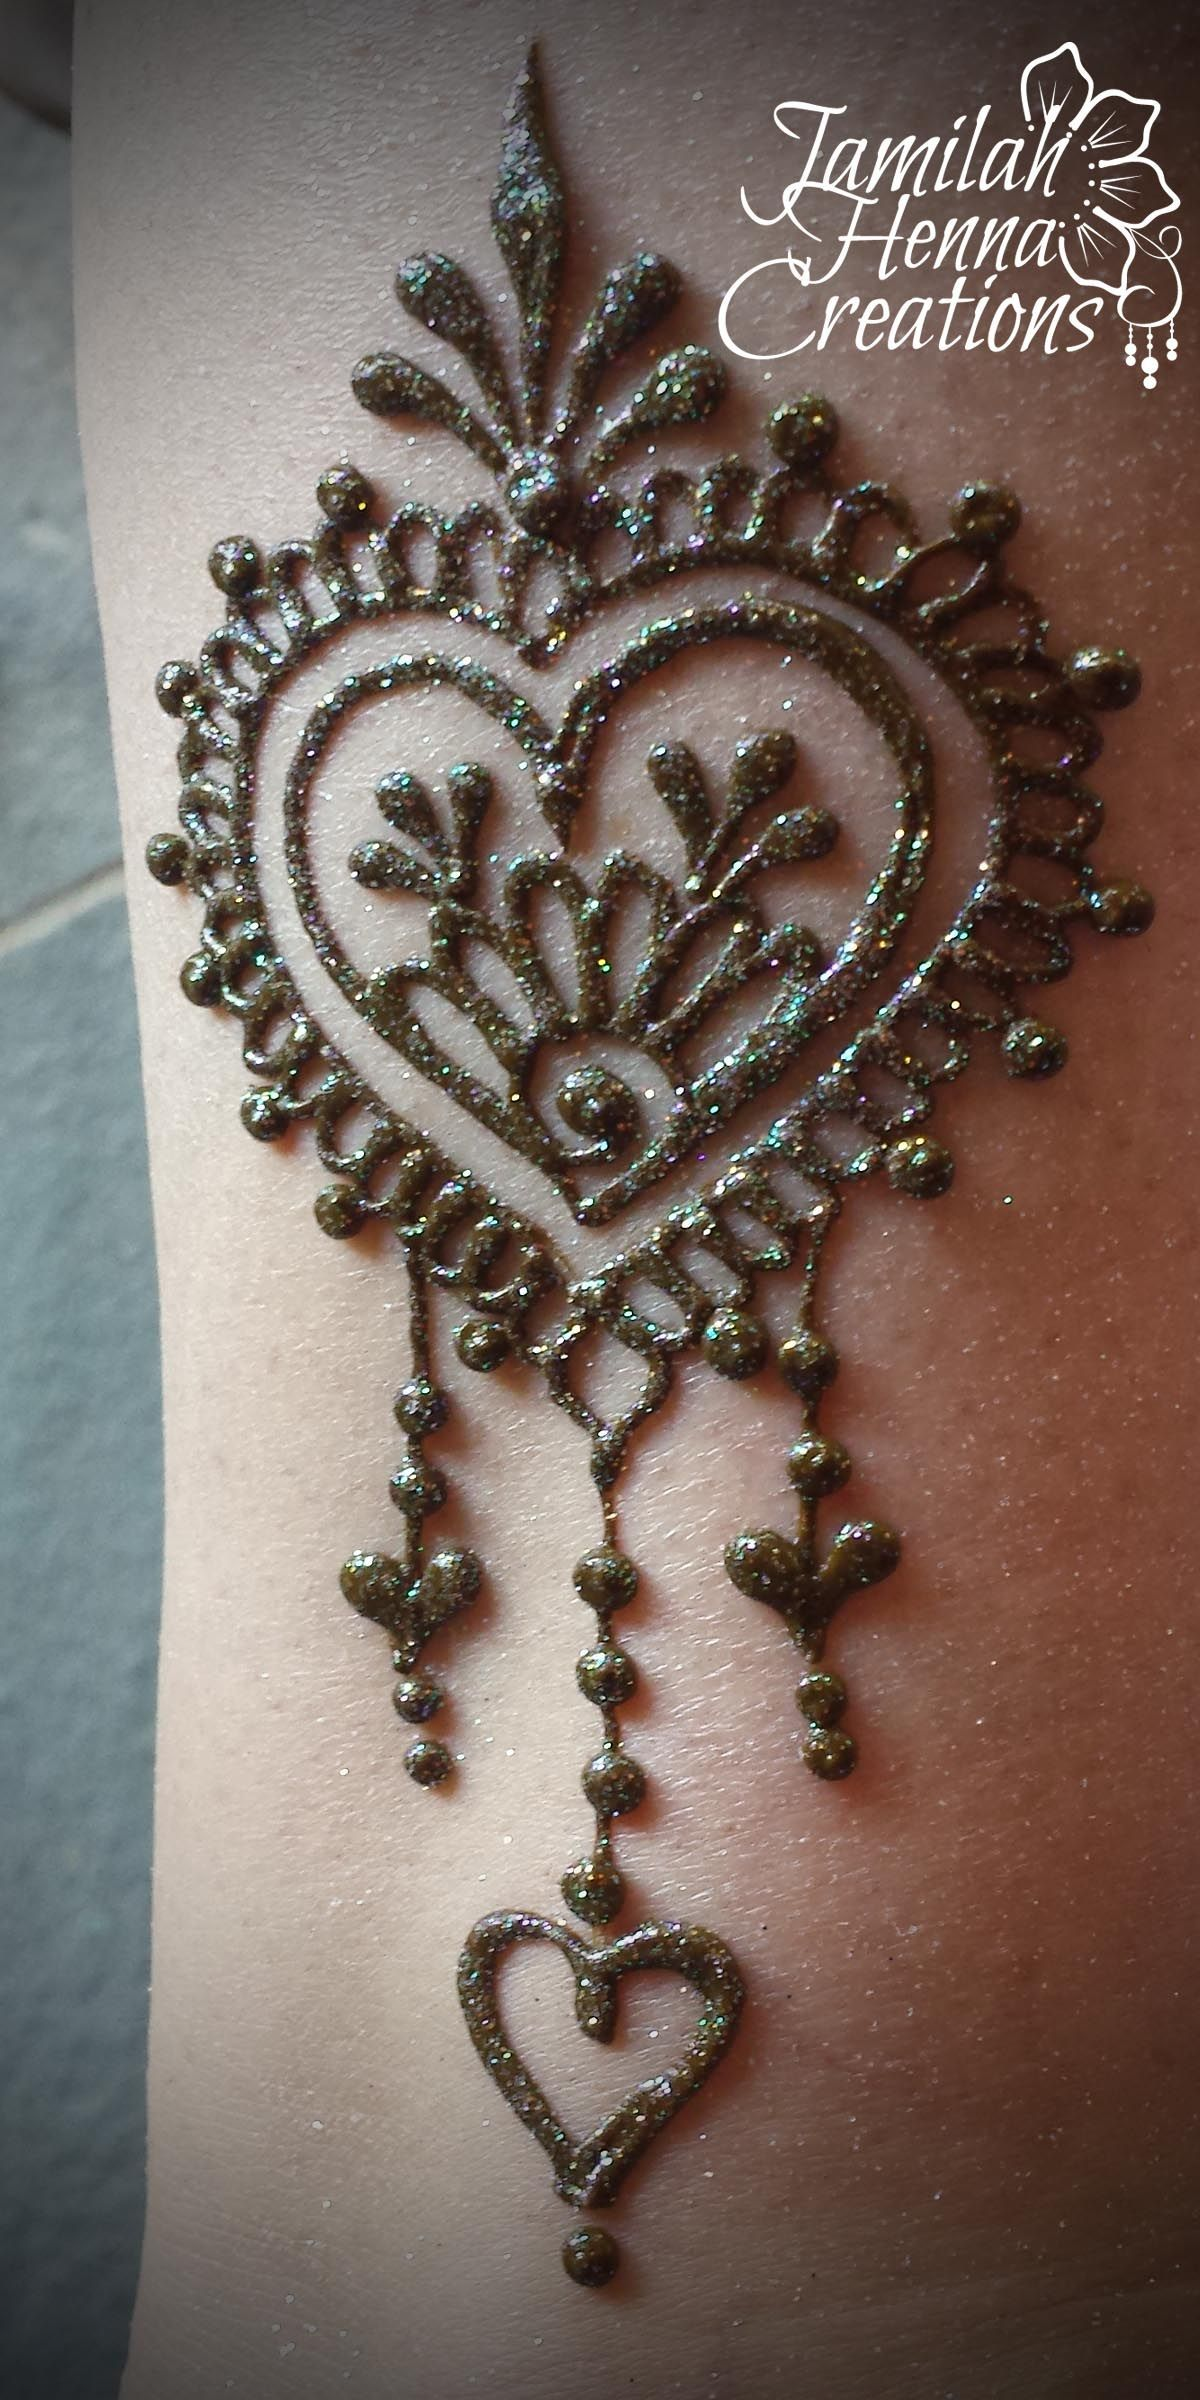 Heart Henna Tattoos: Pin By Leah Swift On Tattoos